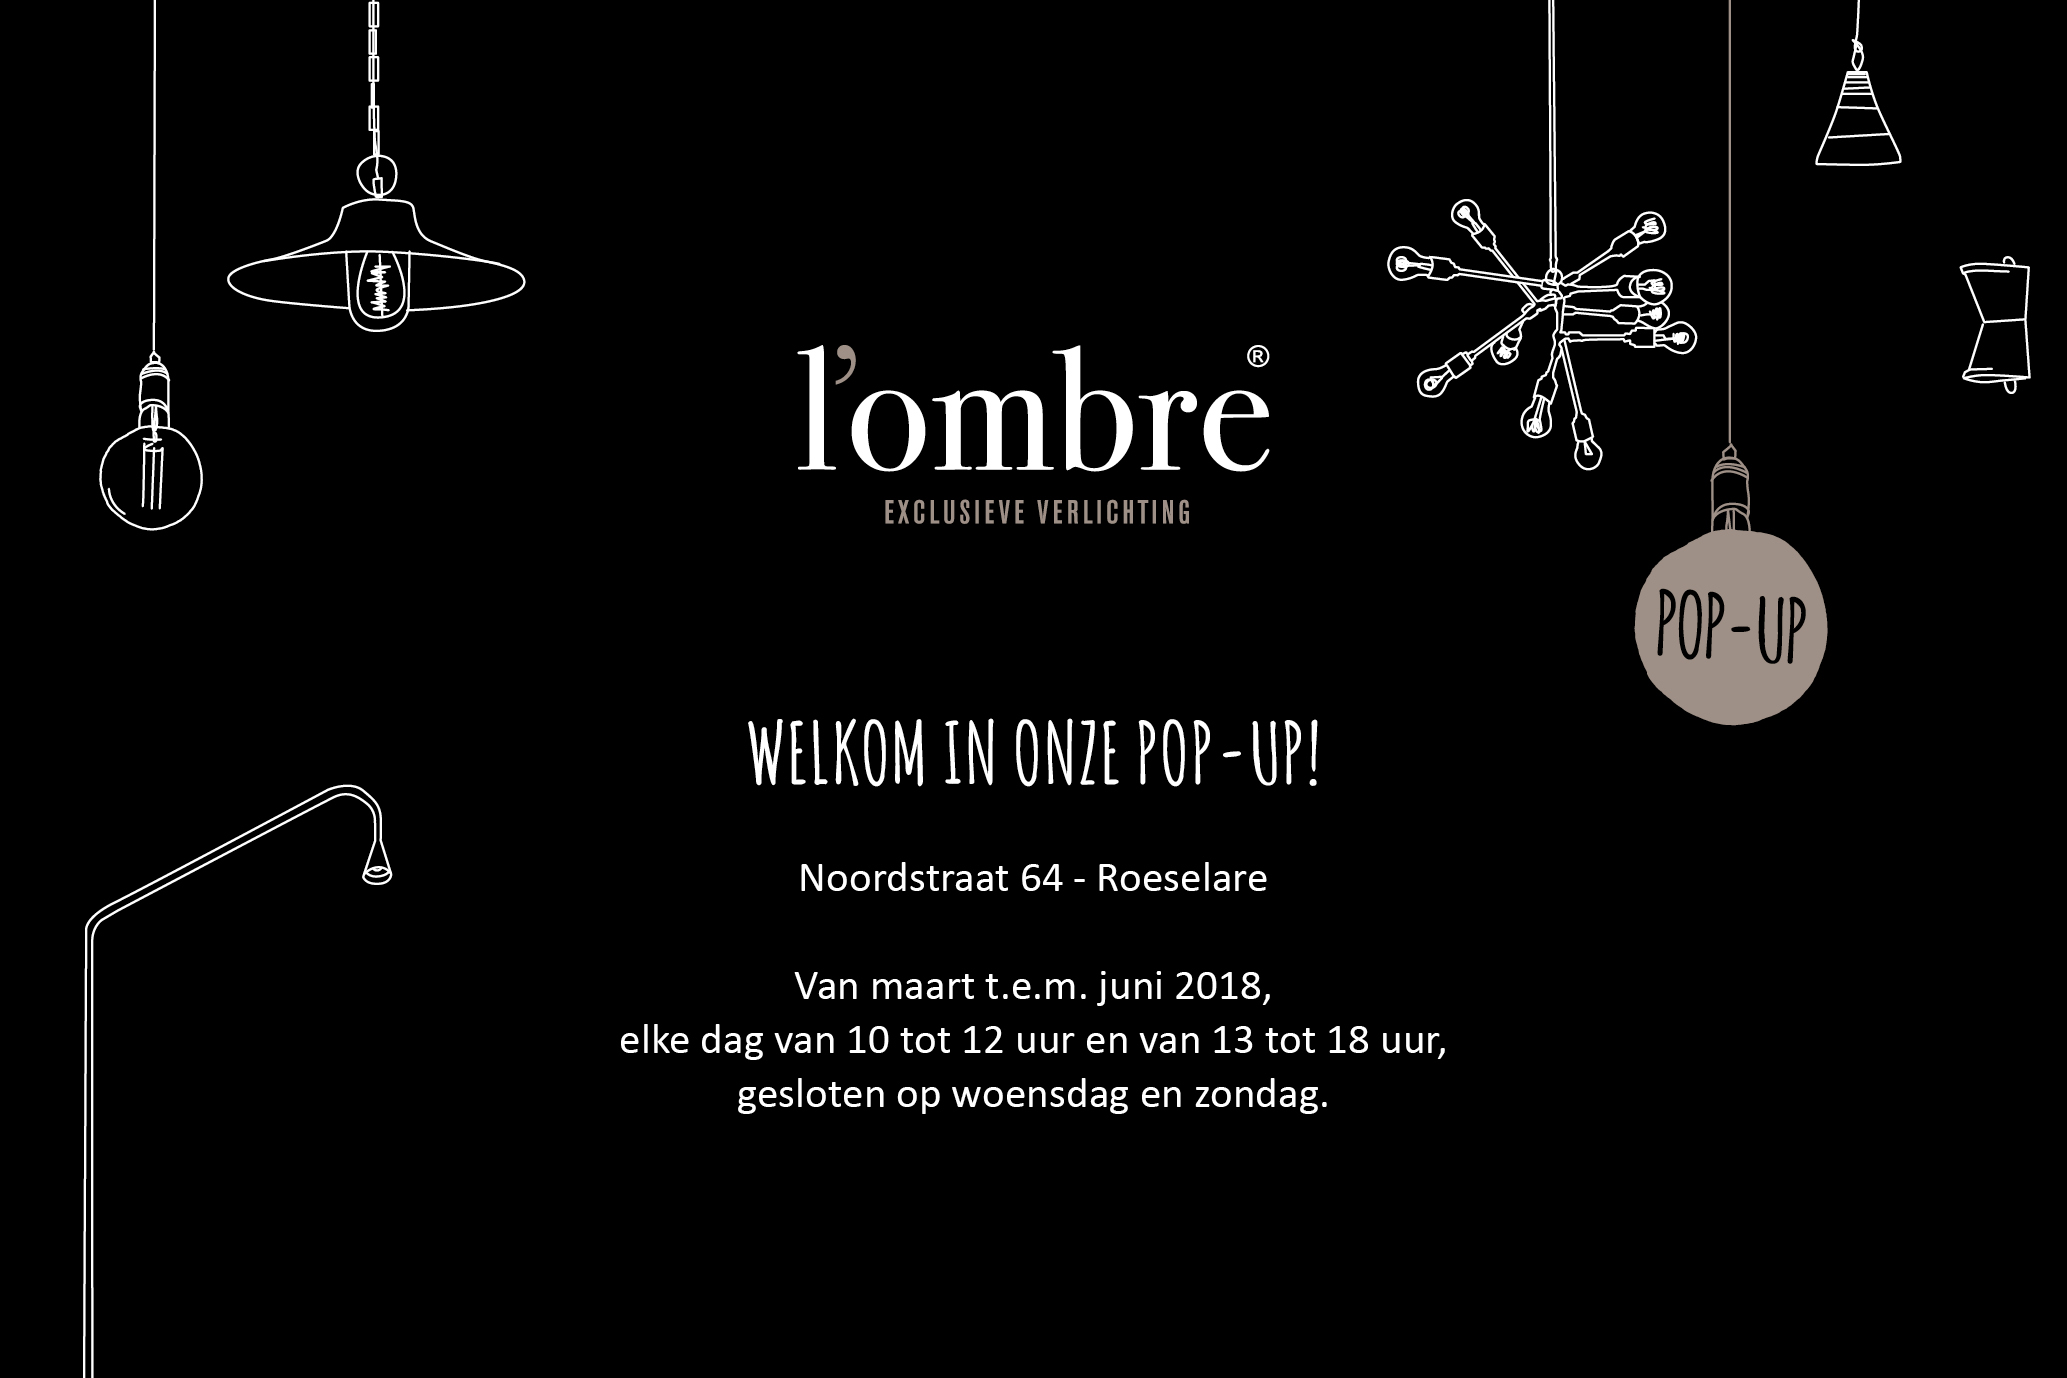 https://www.lombre.be/images/popup.jpg